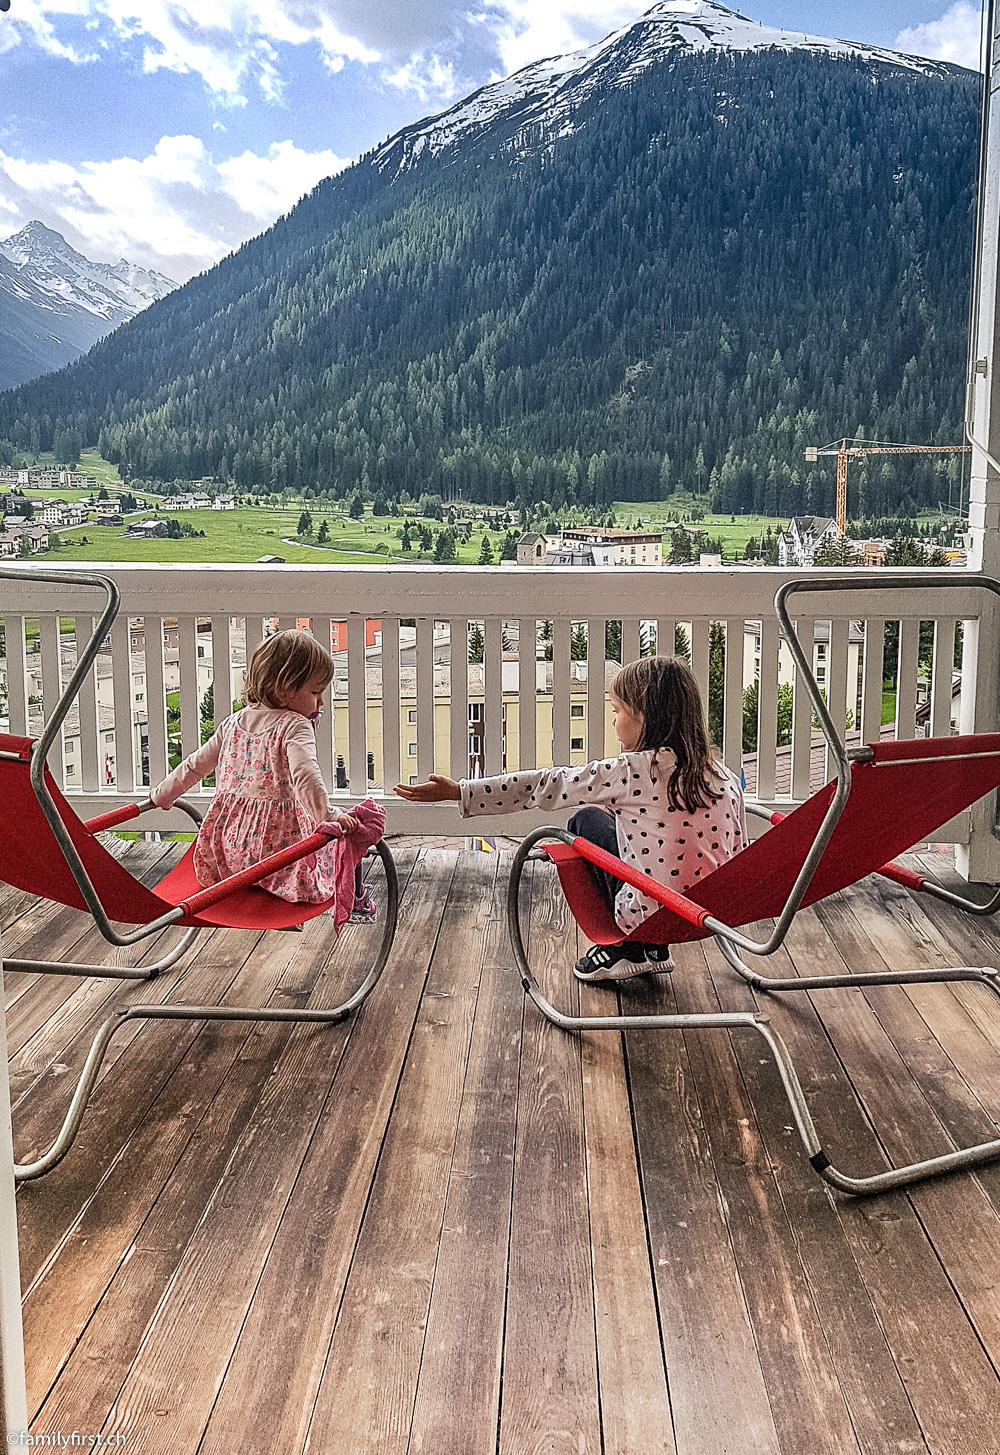 Youthpalace Davos - Youth hostel, Jugendherberge mit Kindern